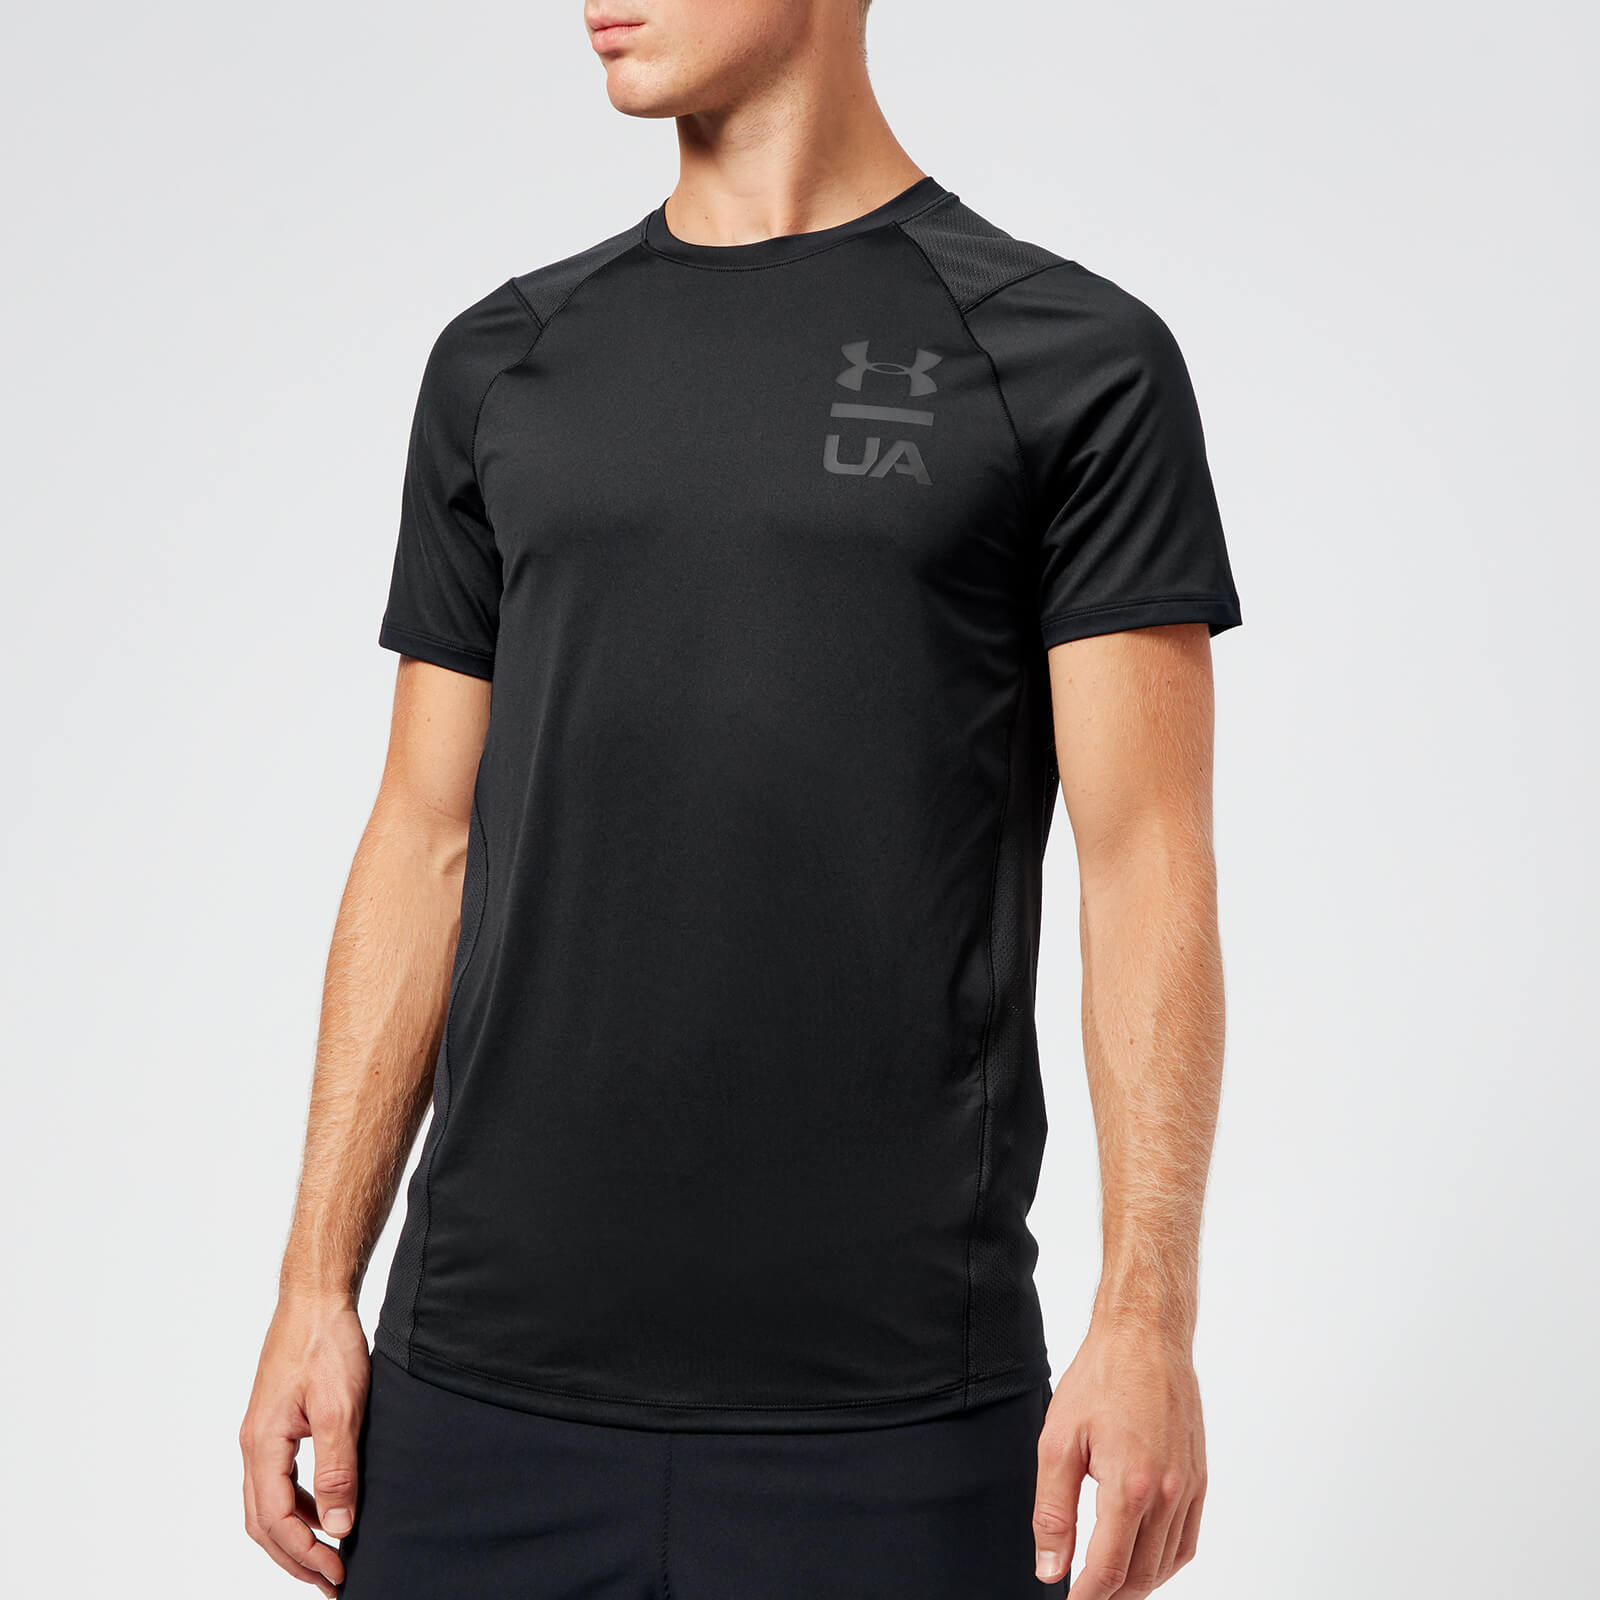 8c7c806a8 Under Armour Men's MK1 Logo Graphic Short Sleeve T-Shirt - Black Sports &  Leisure | TheHut.com